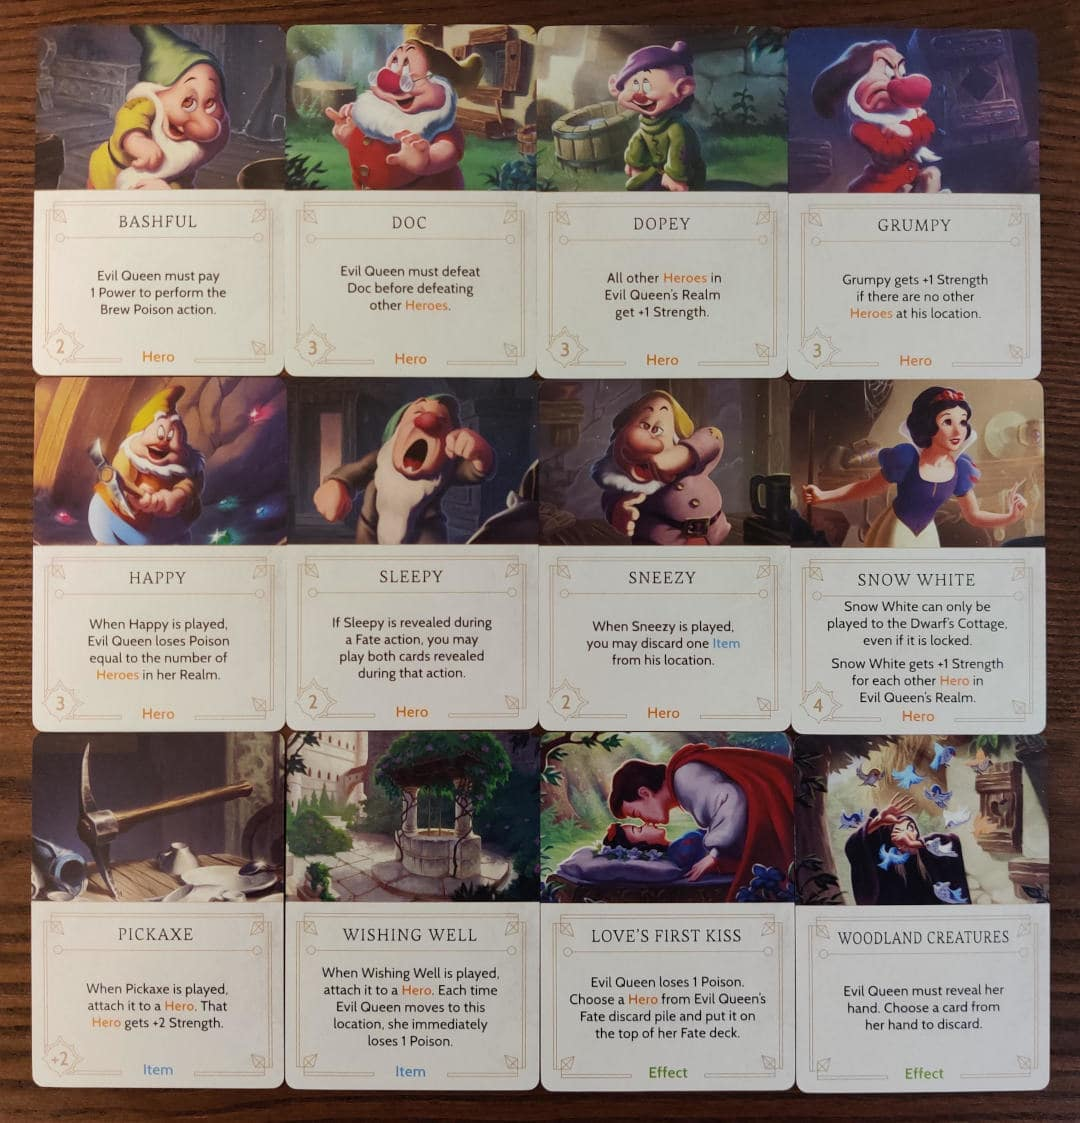 All Evil Queen's Fate cards